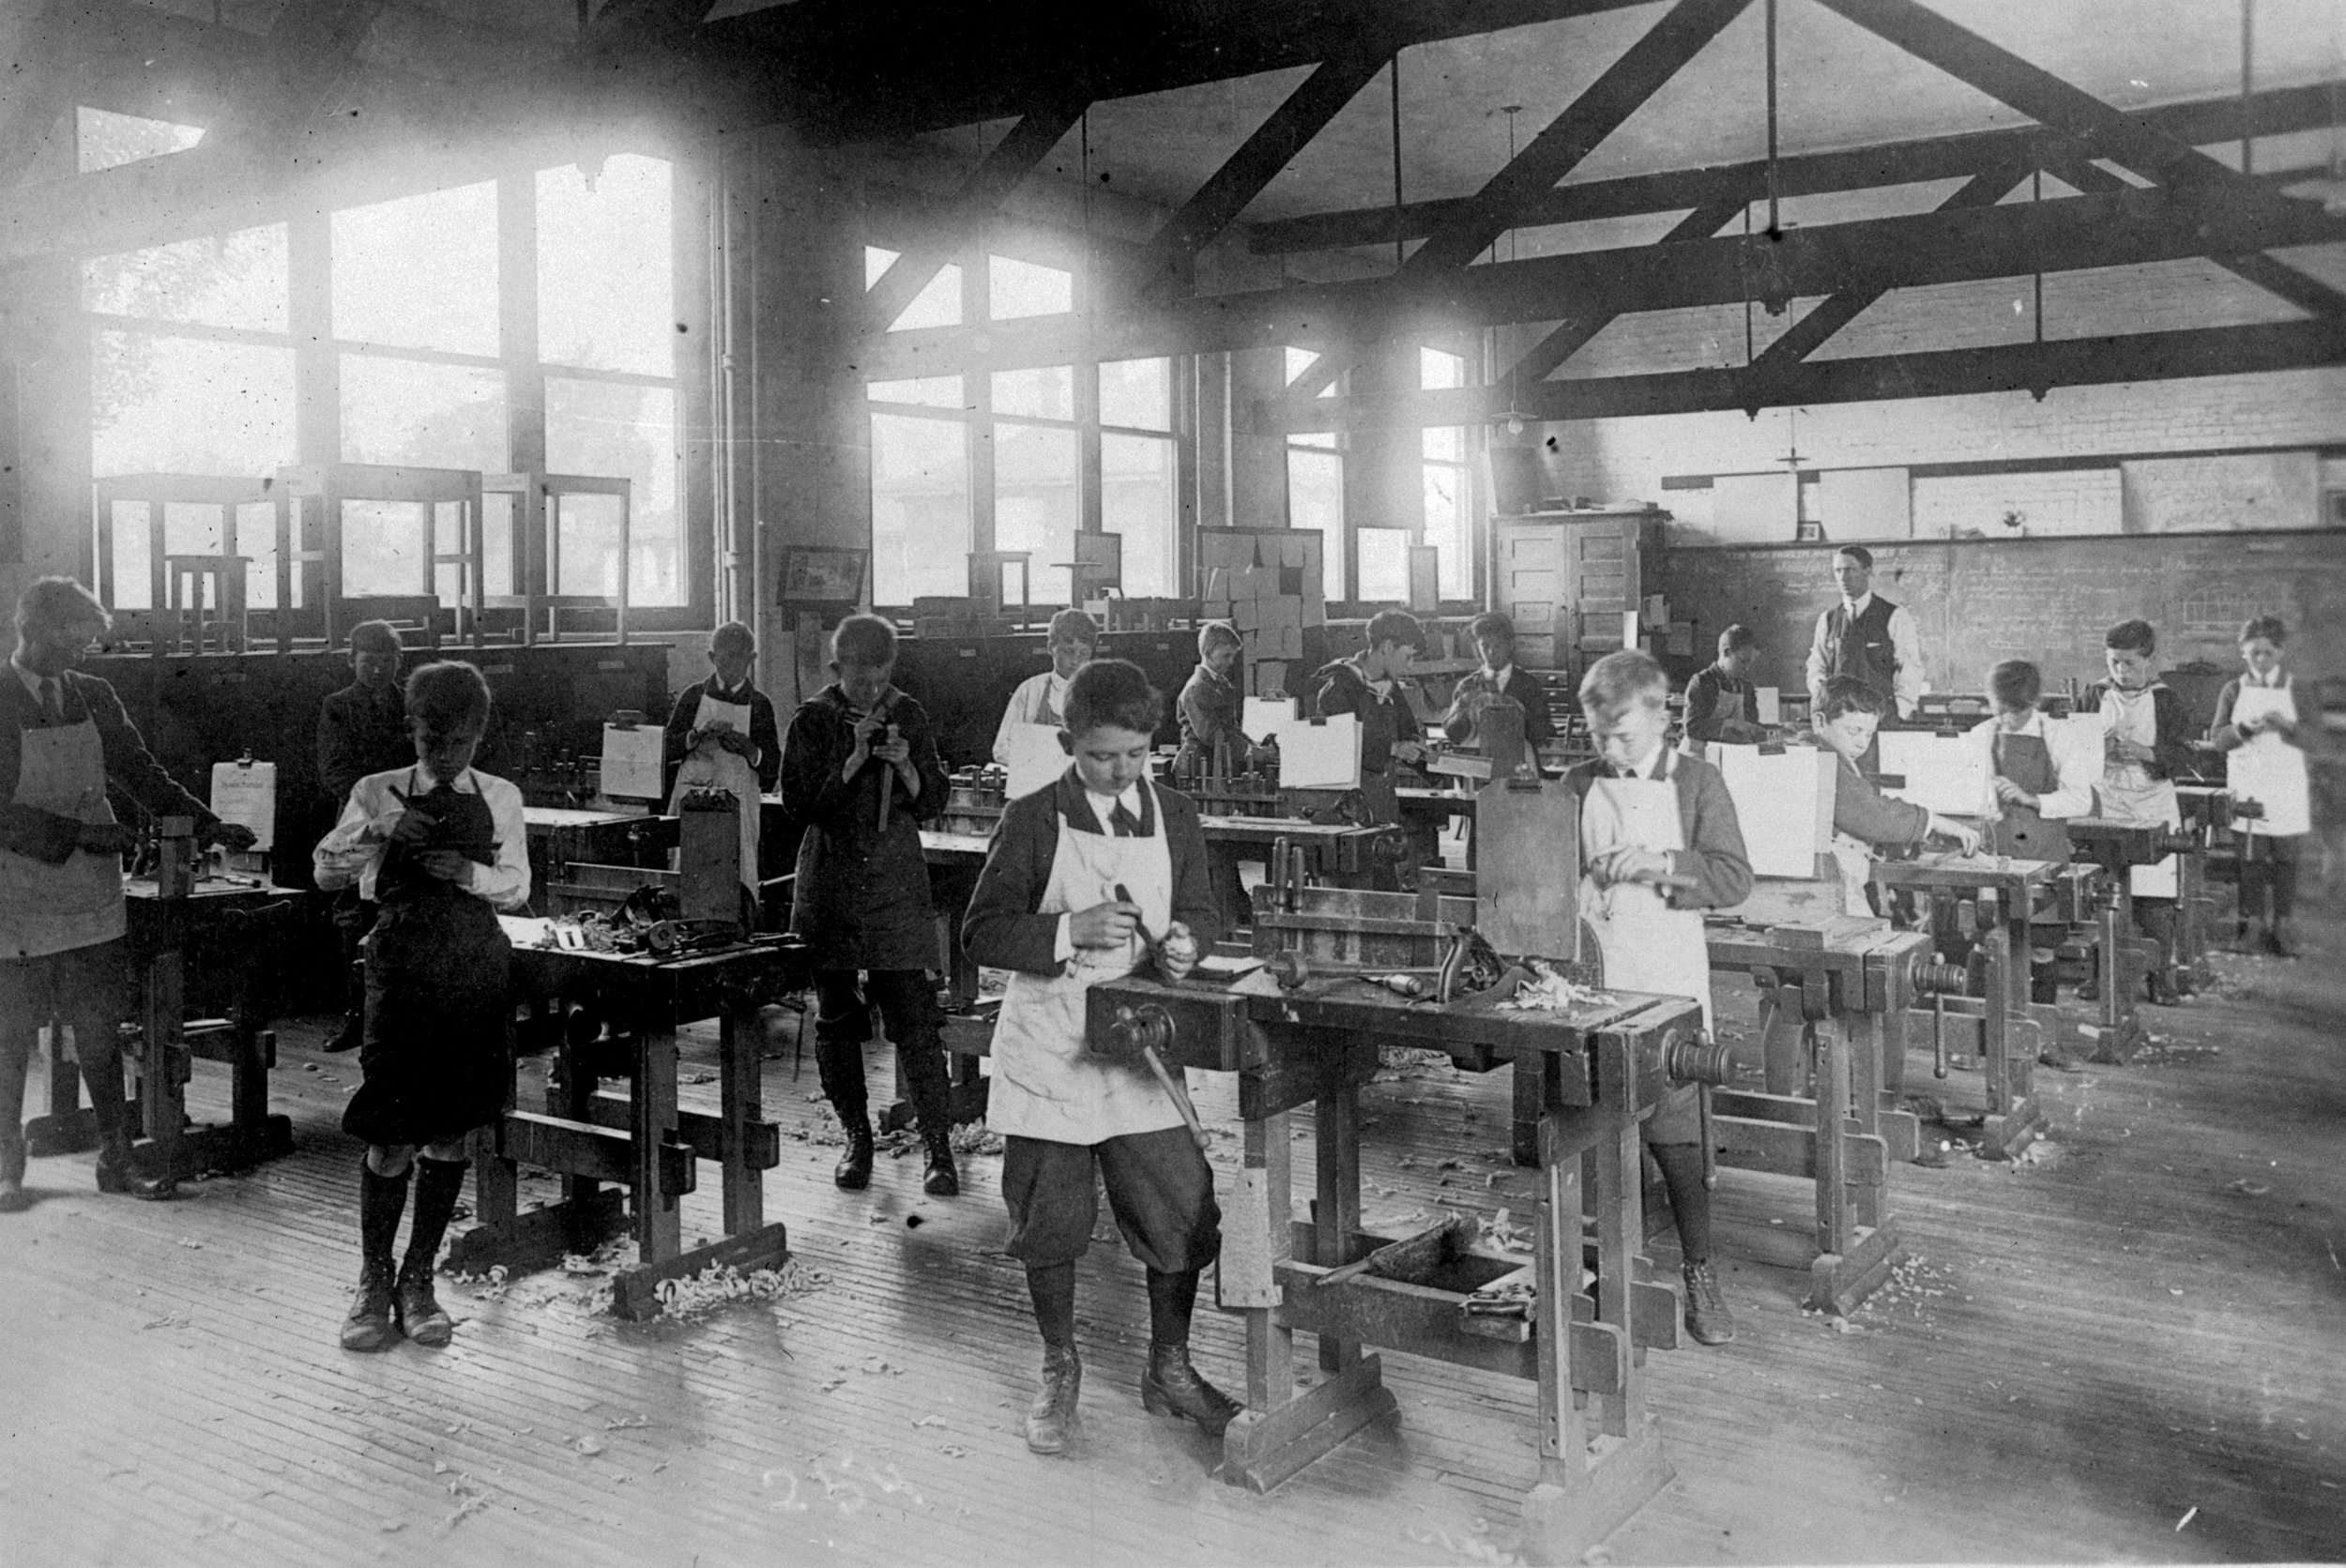 Manual training, South Park School, Victoria. 1915. Image D-01802 Courtesy of the Royal BC Museum and Archives